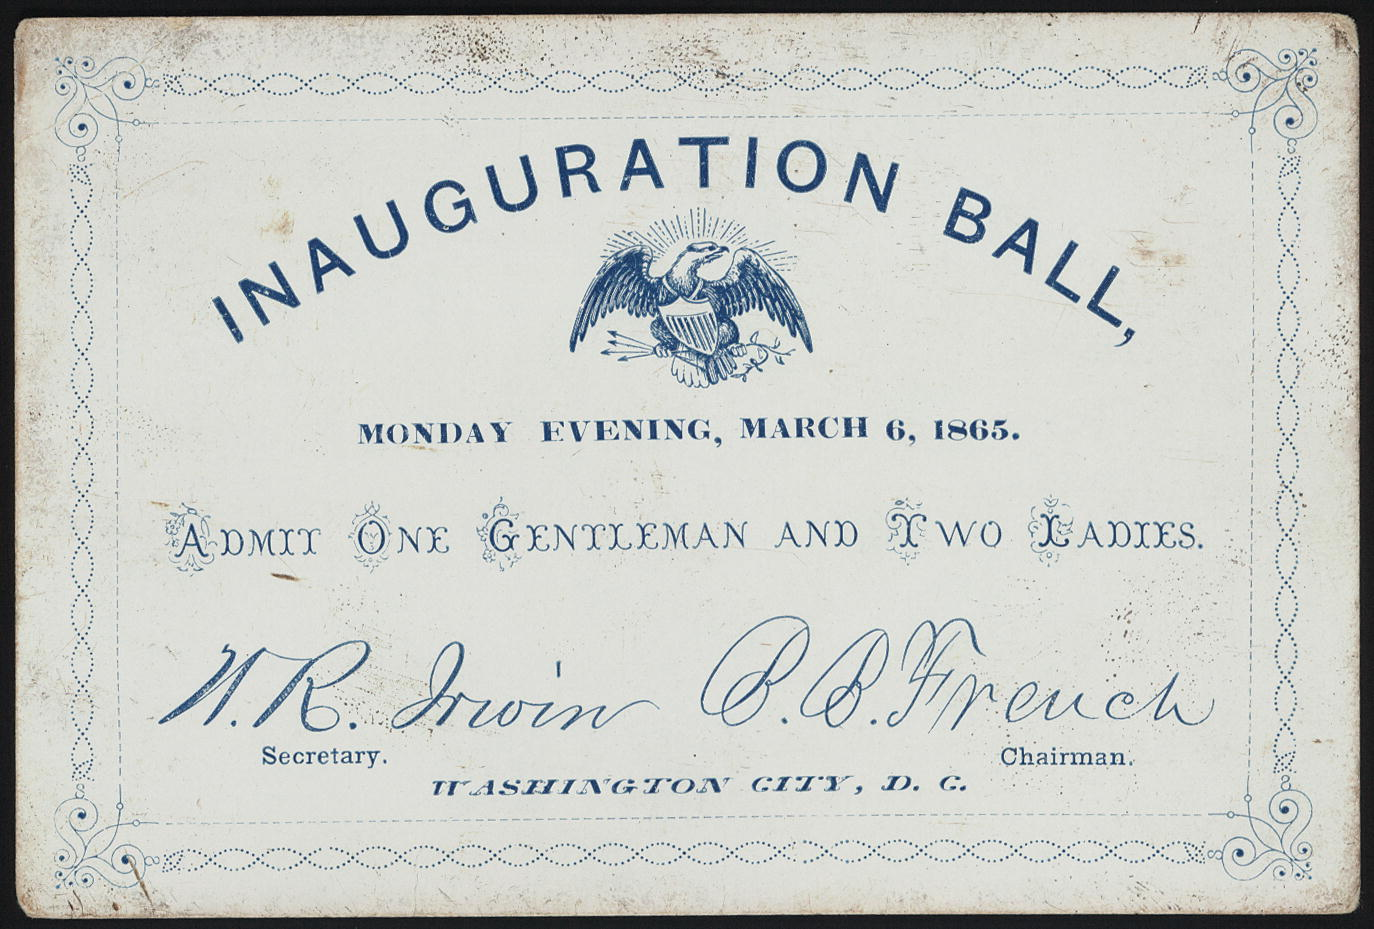 Lincoln's Inaugural Ball: Admit One Gentleman and Two Ladies